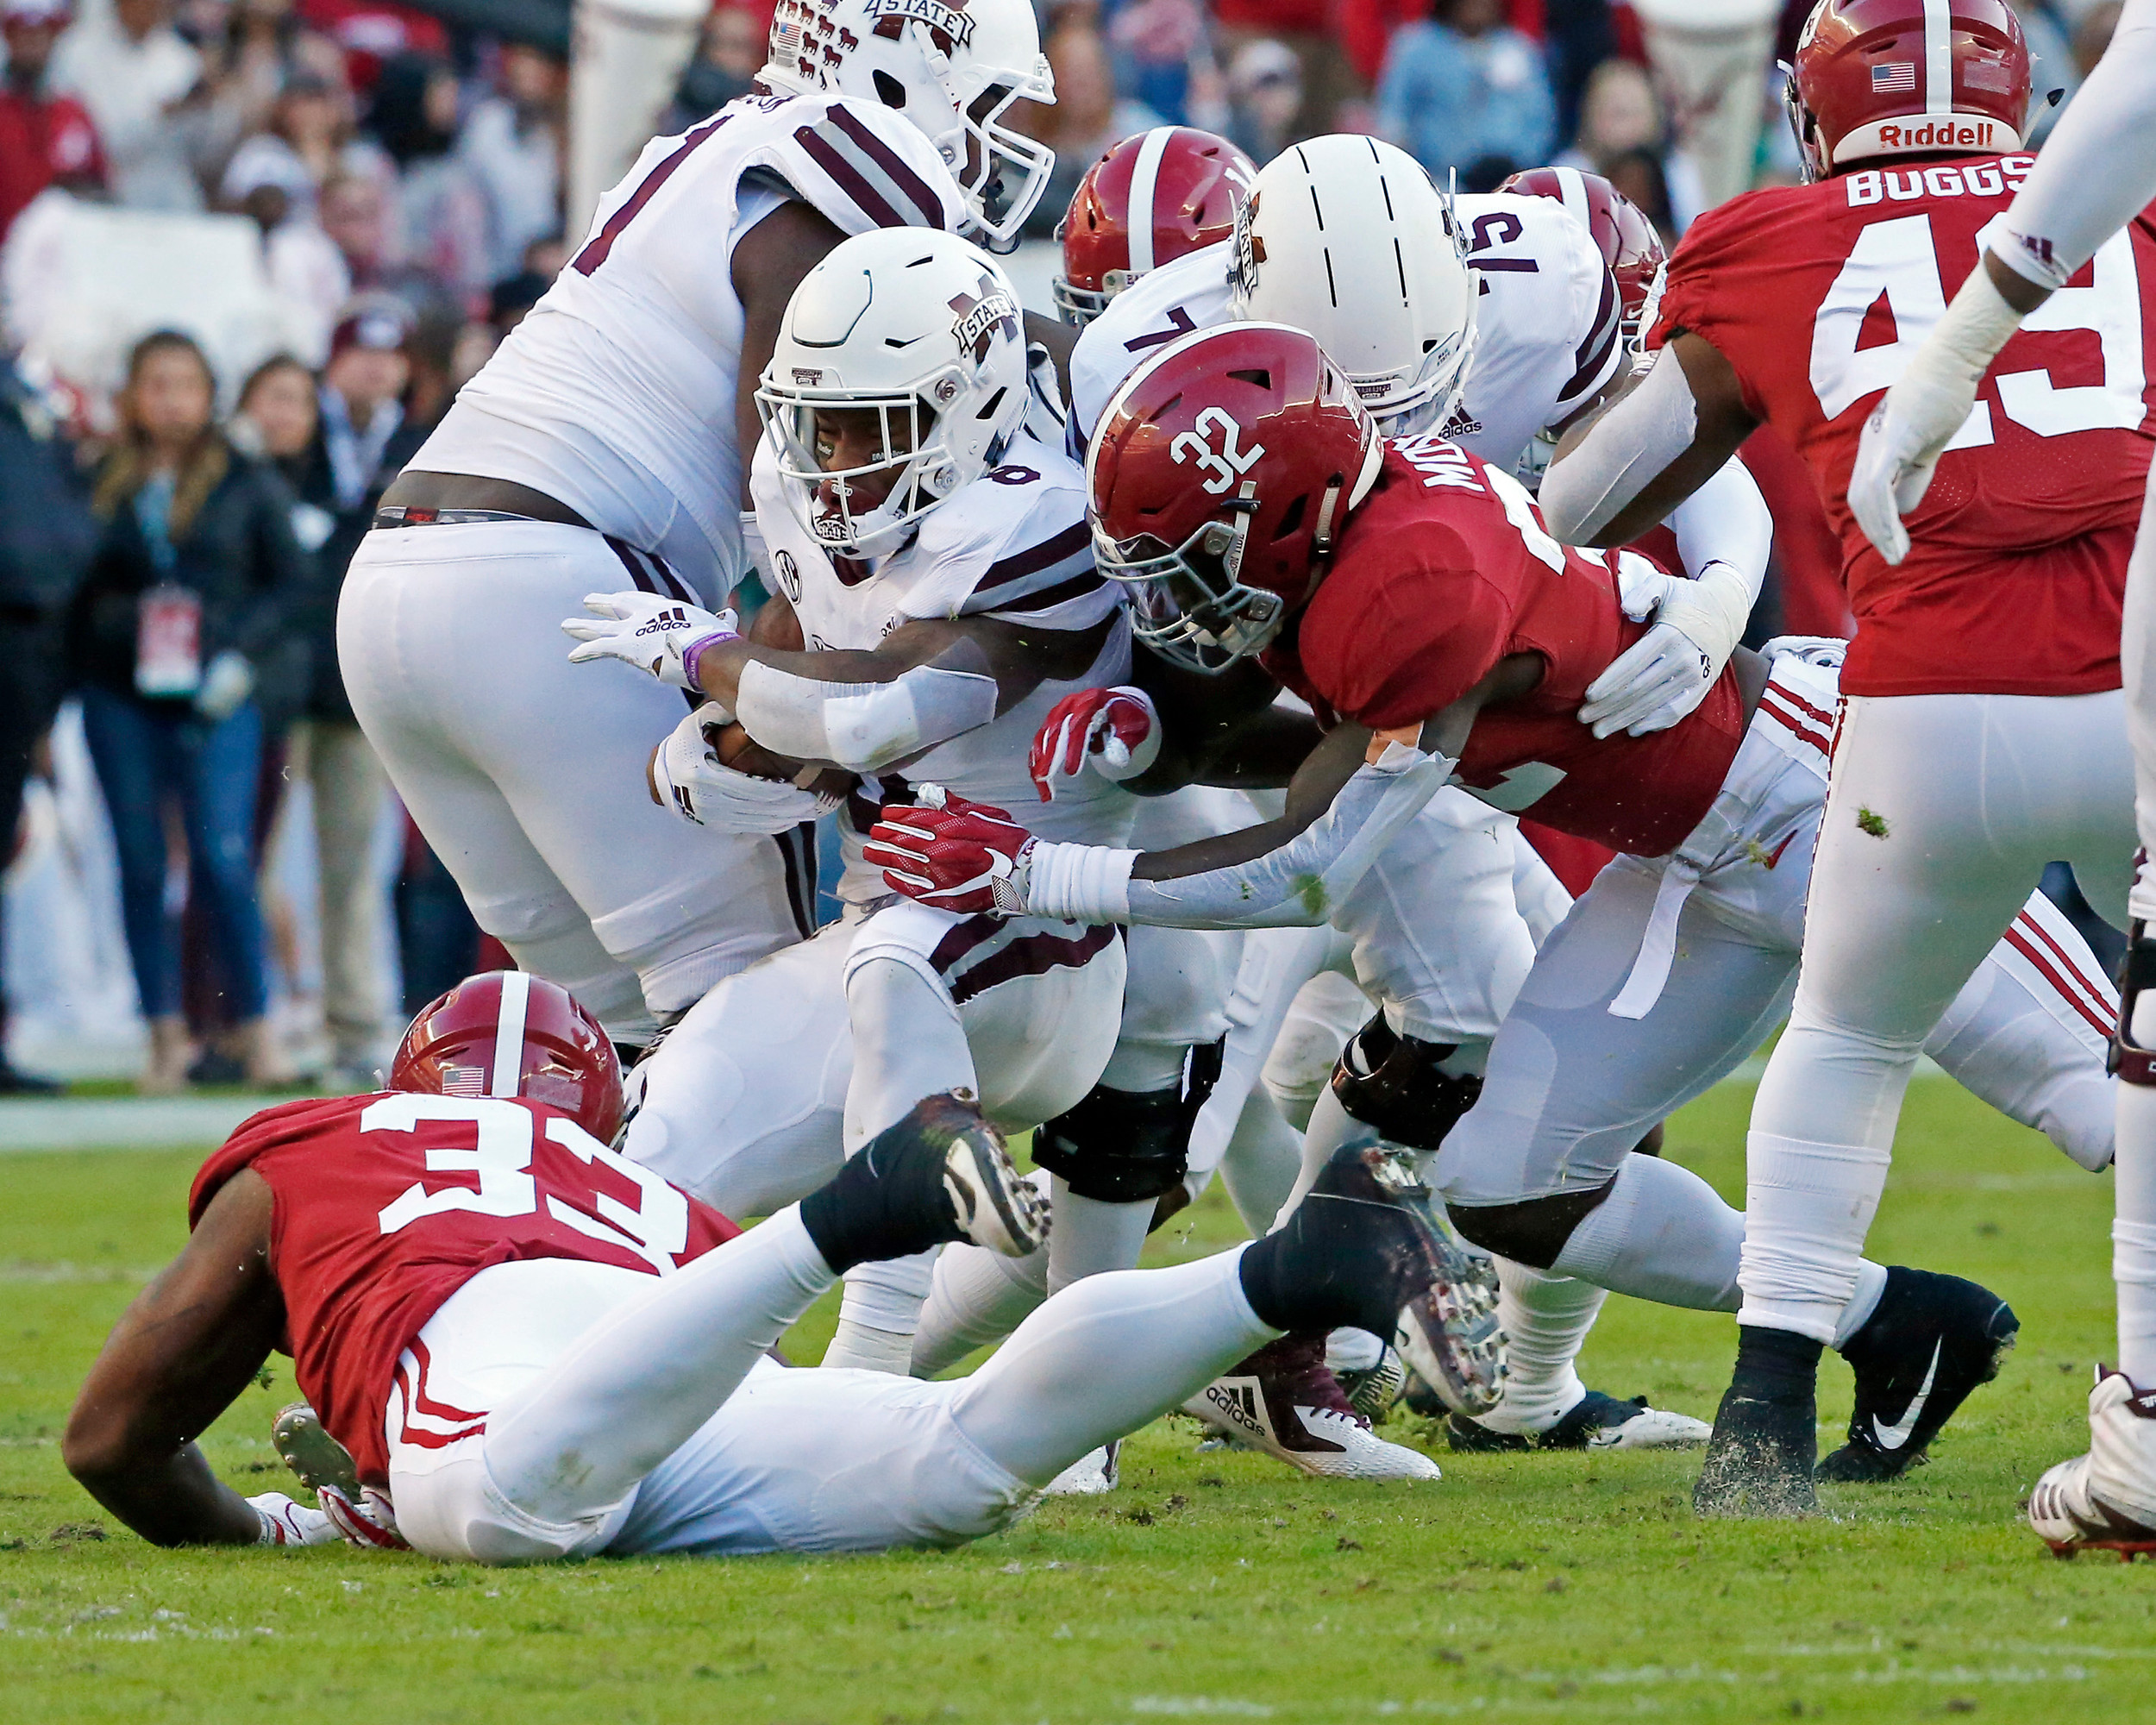 Mississippi State Bulldogs running back Kylin Hill (8) spins away from Alabama Crimson Tide linebacker Dylan Moses (32) during the game between Mississippi State and the University of Alabama at Bryant-Denny Stadium in Tuscaloosa, Al. Credit: Jason Clark / Daily Mountain Eagle